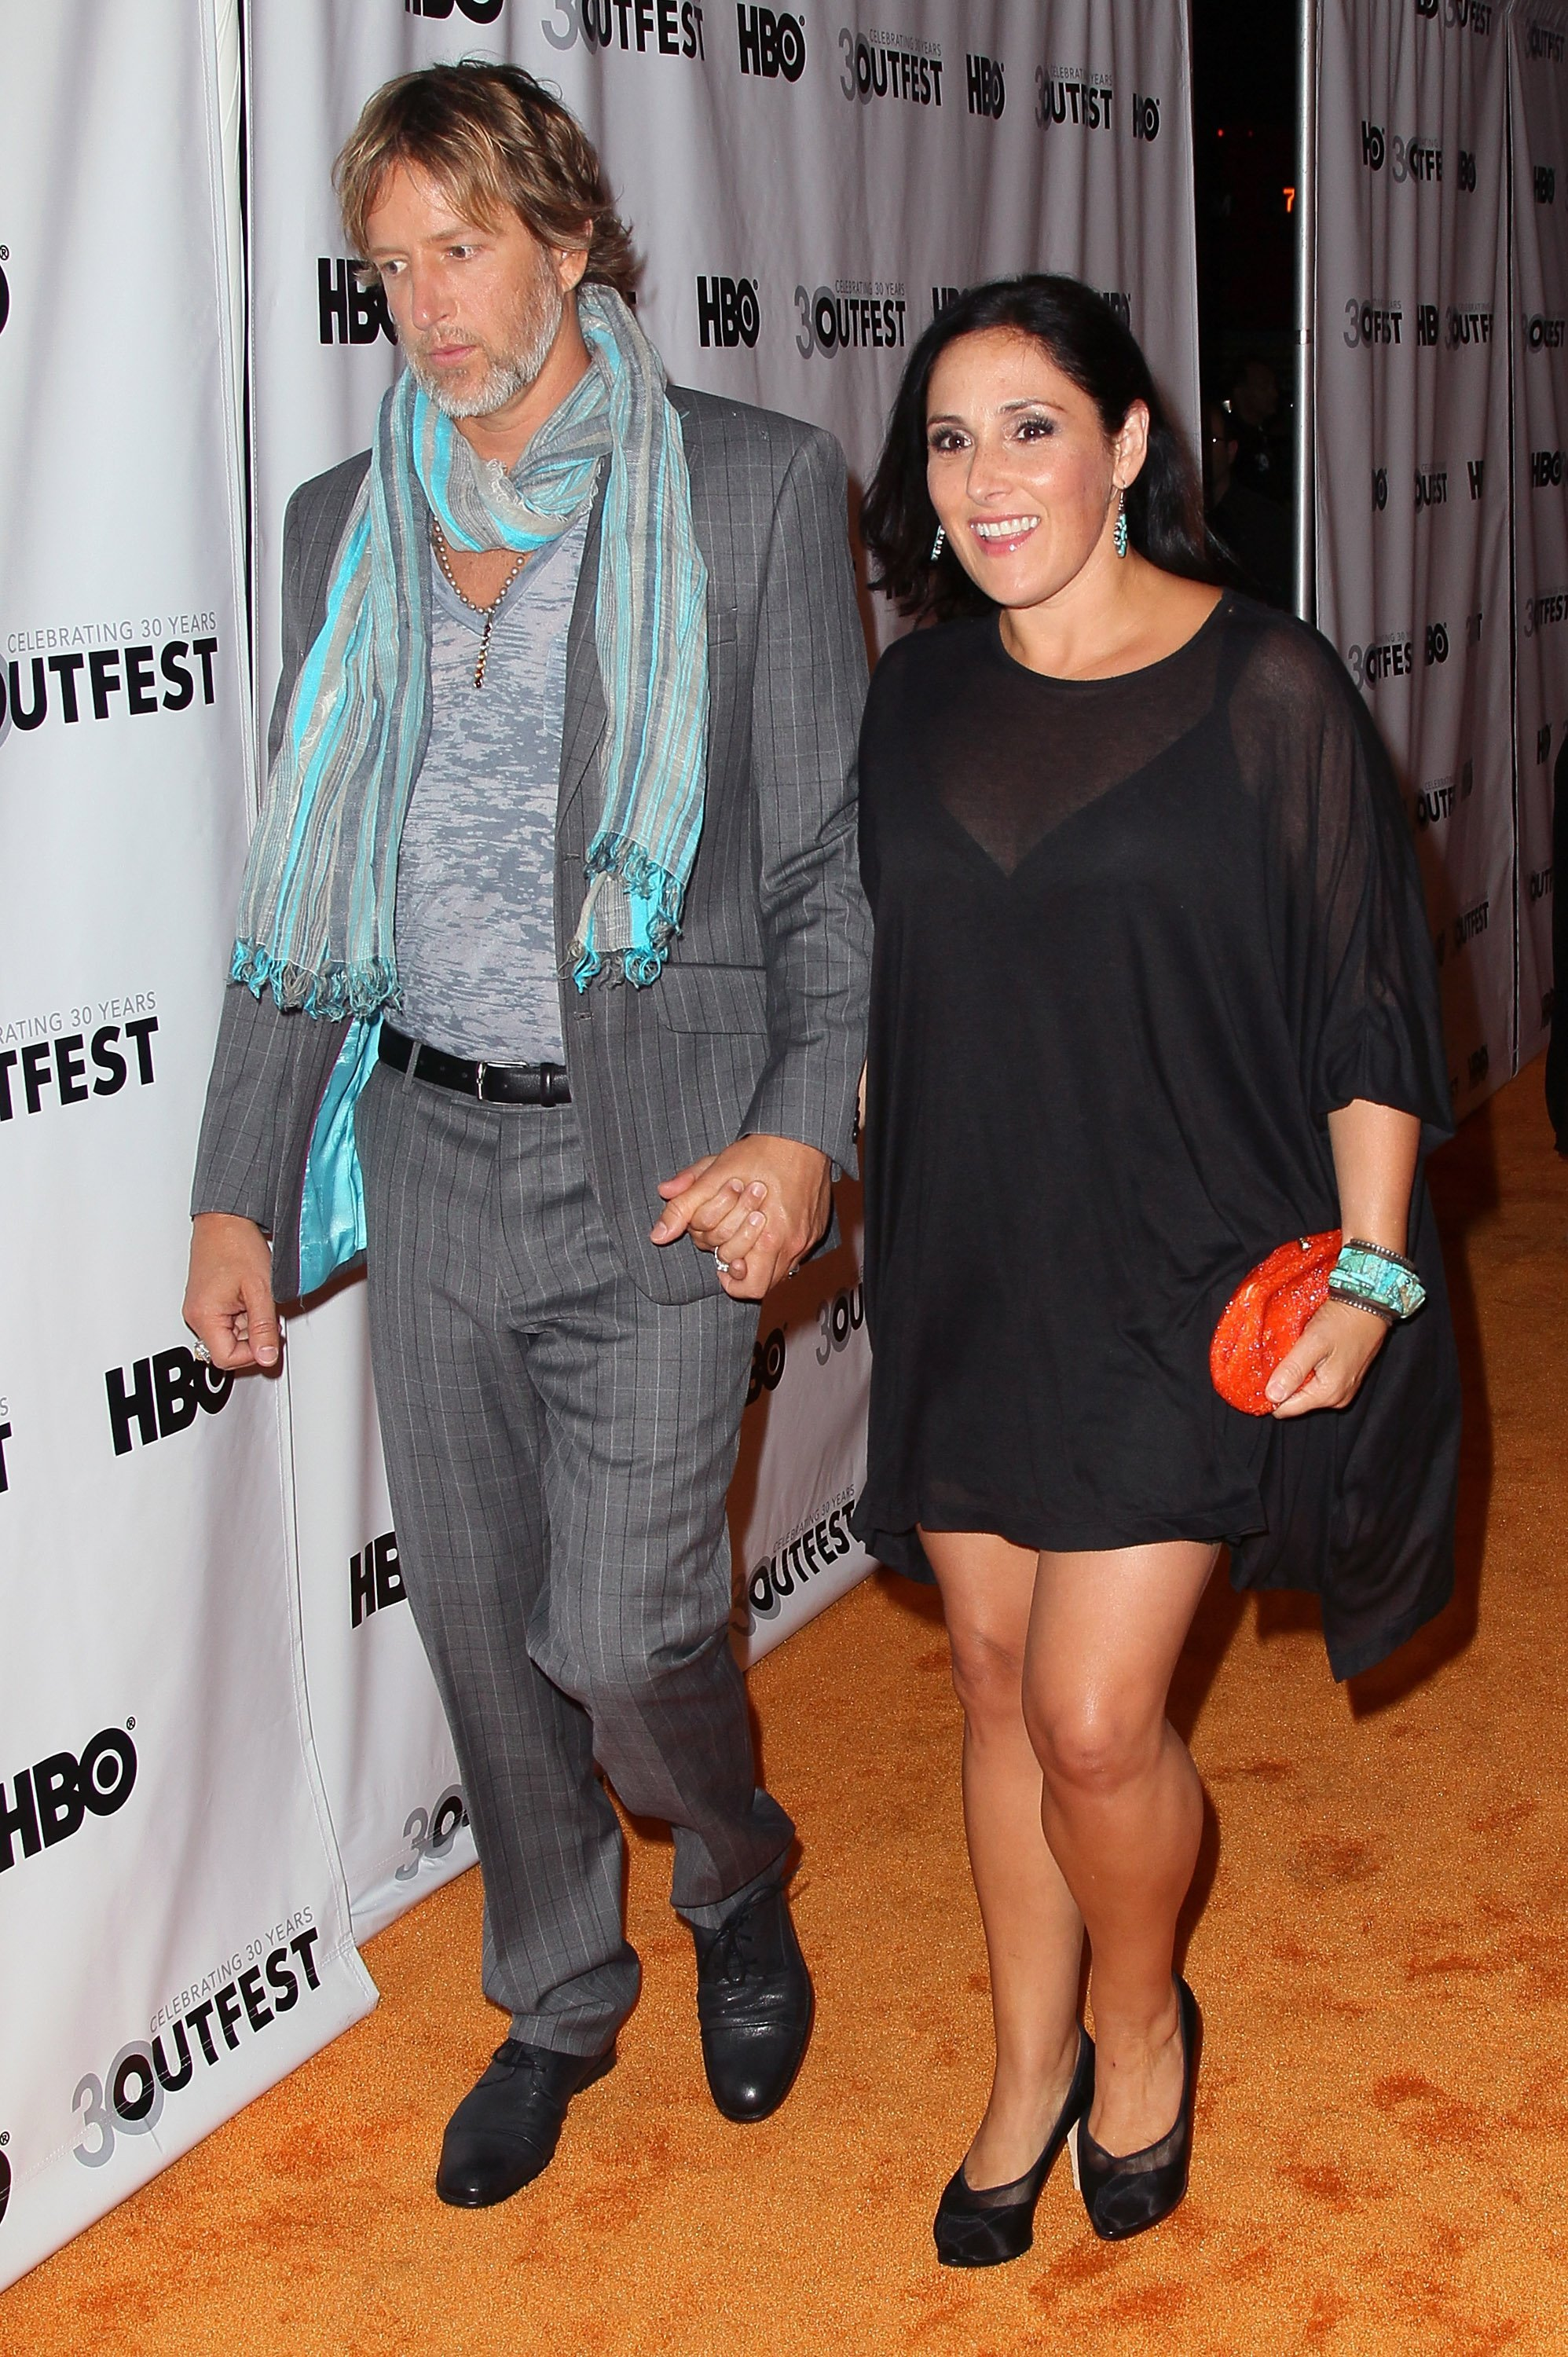 Ricki Lake and husband Christian Evans on July 12, 2012 in Los Angeles, California | Photo: Getty Images